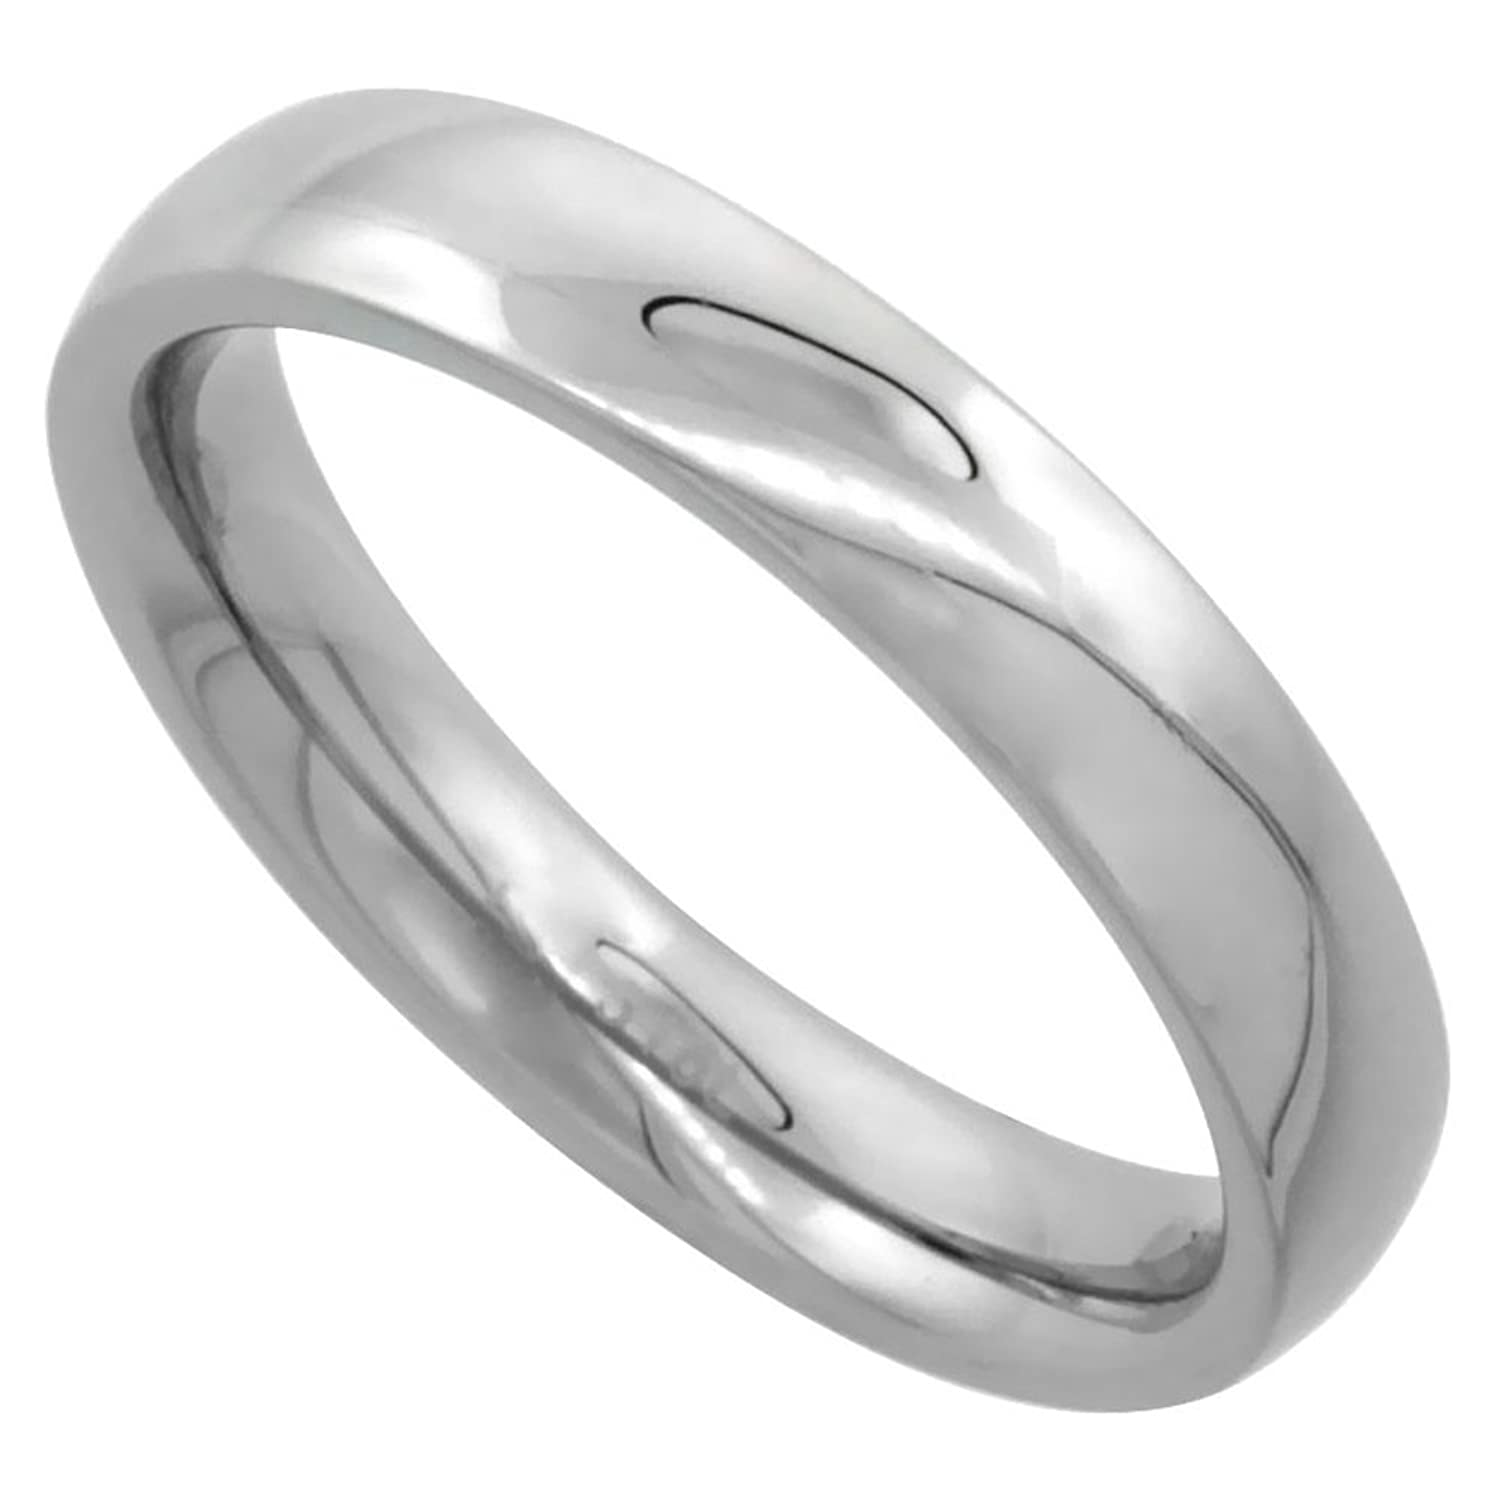 Amazon Surgical Steel Plain Wedding Band Thumb Ring 4mm